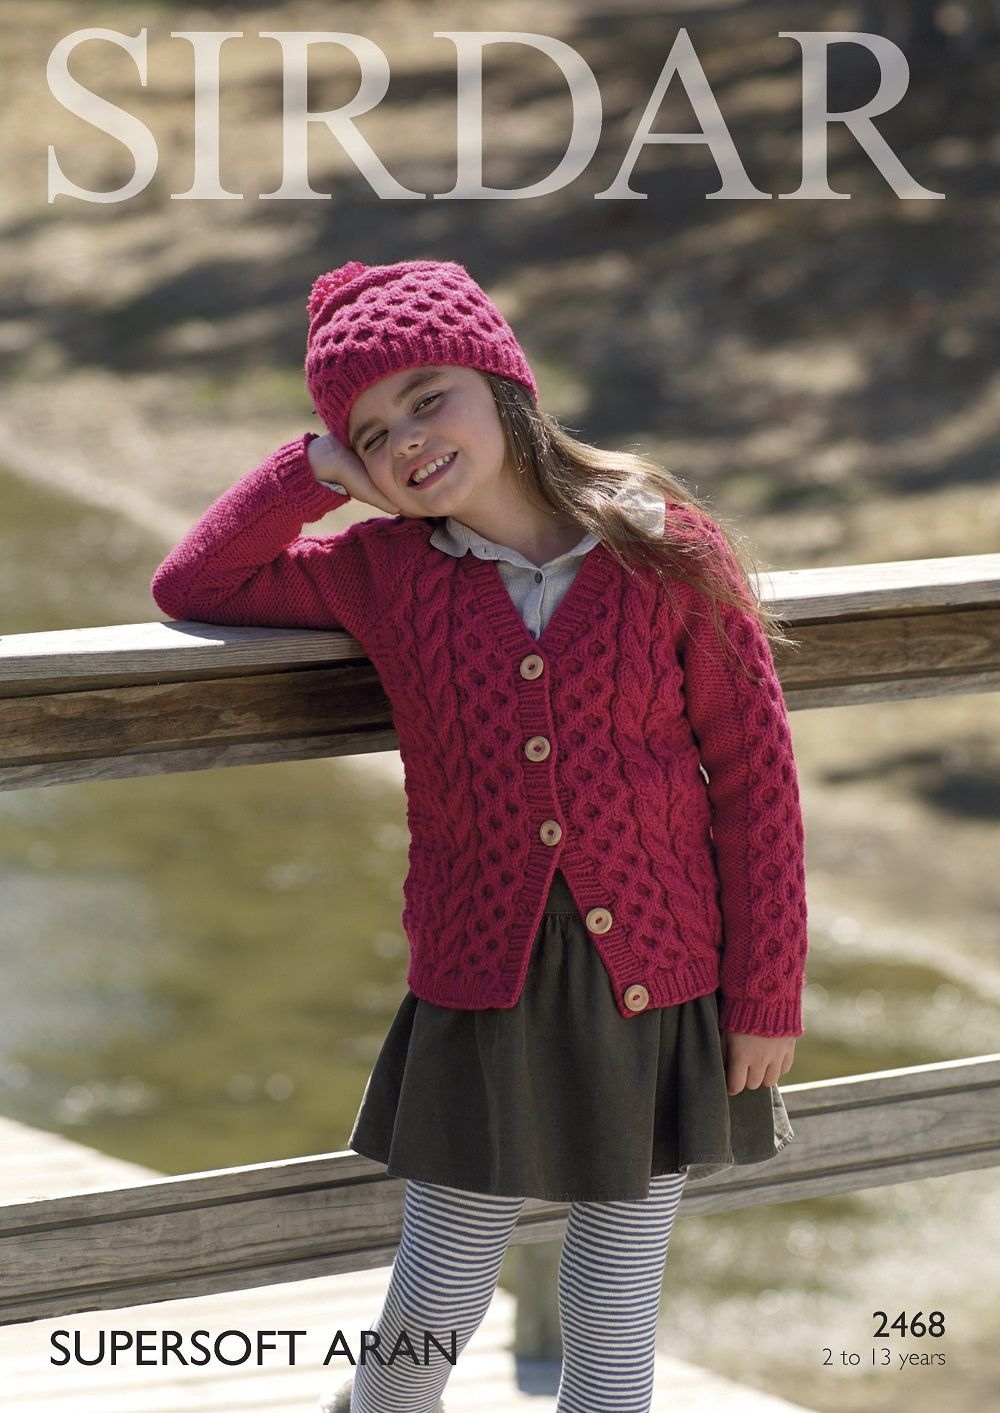 0b9a1cd7355b Sirdar Girls Cardigans Knitting pattern in Supersoft Aran 2468P PDF